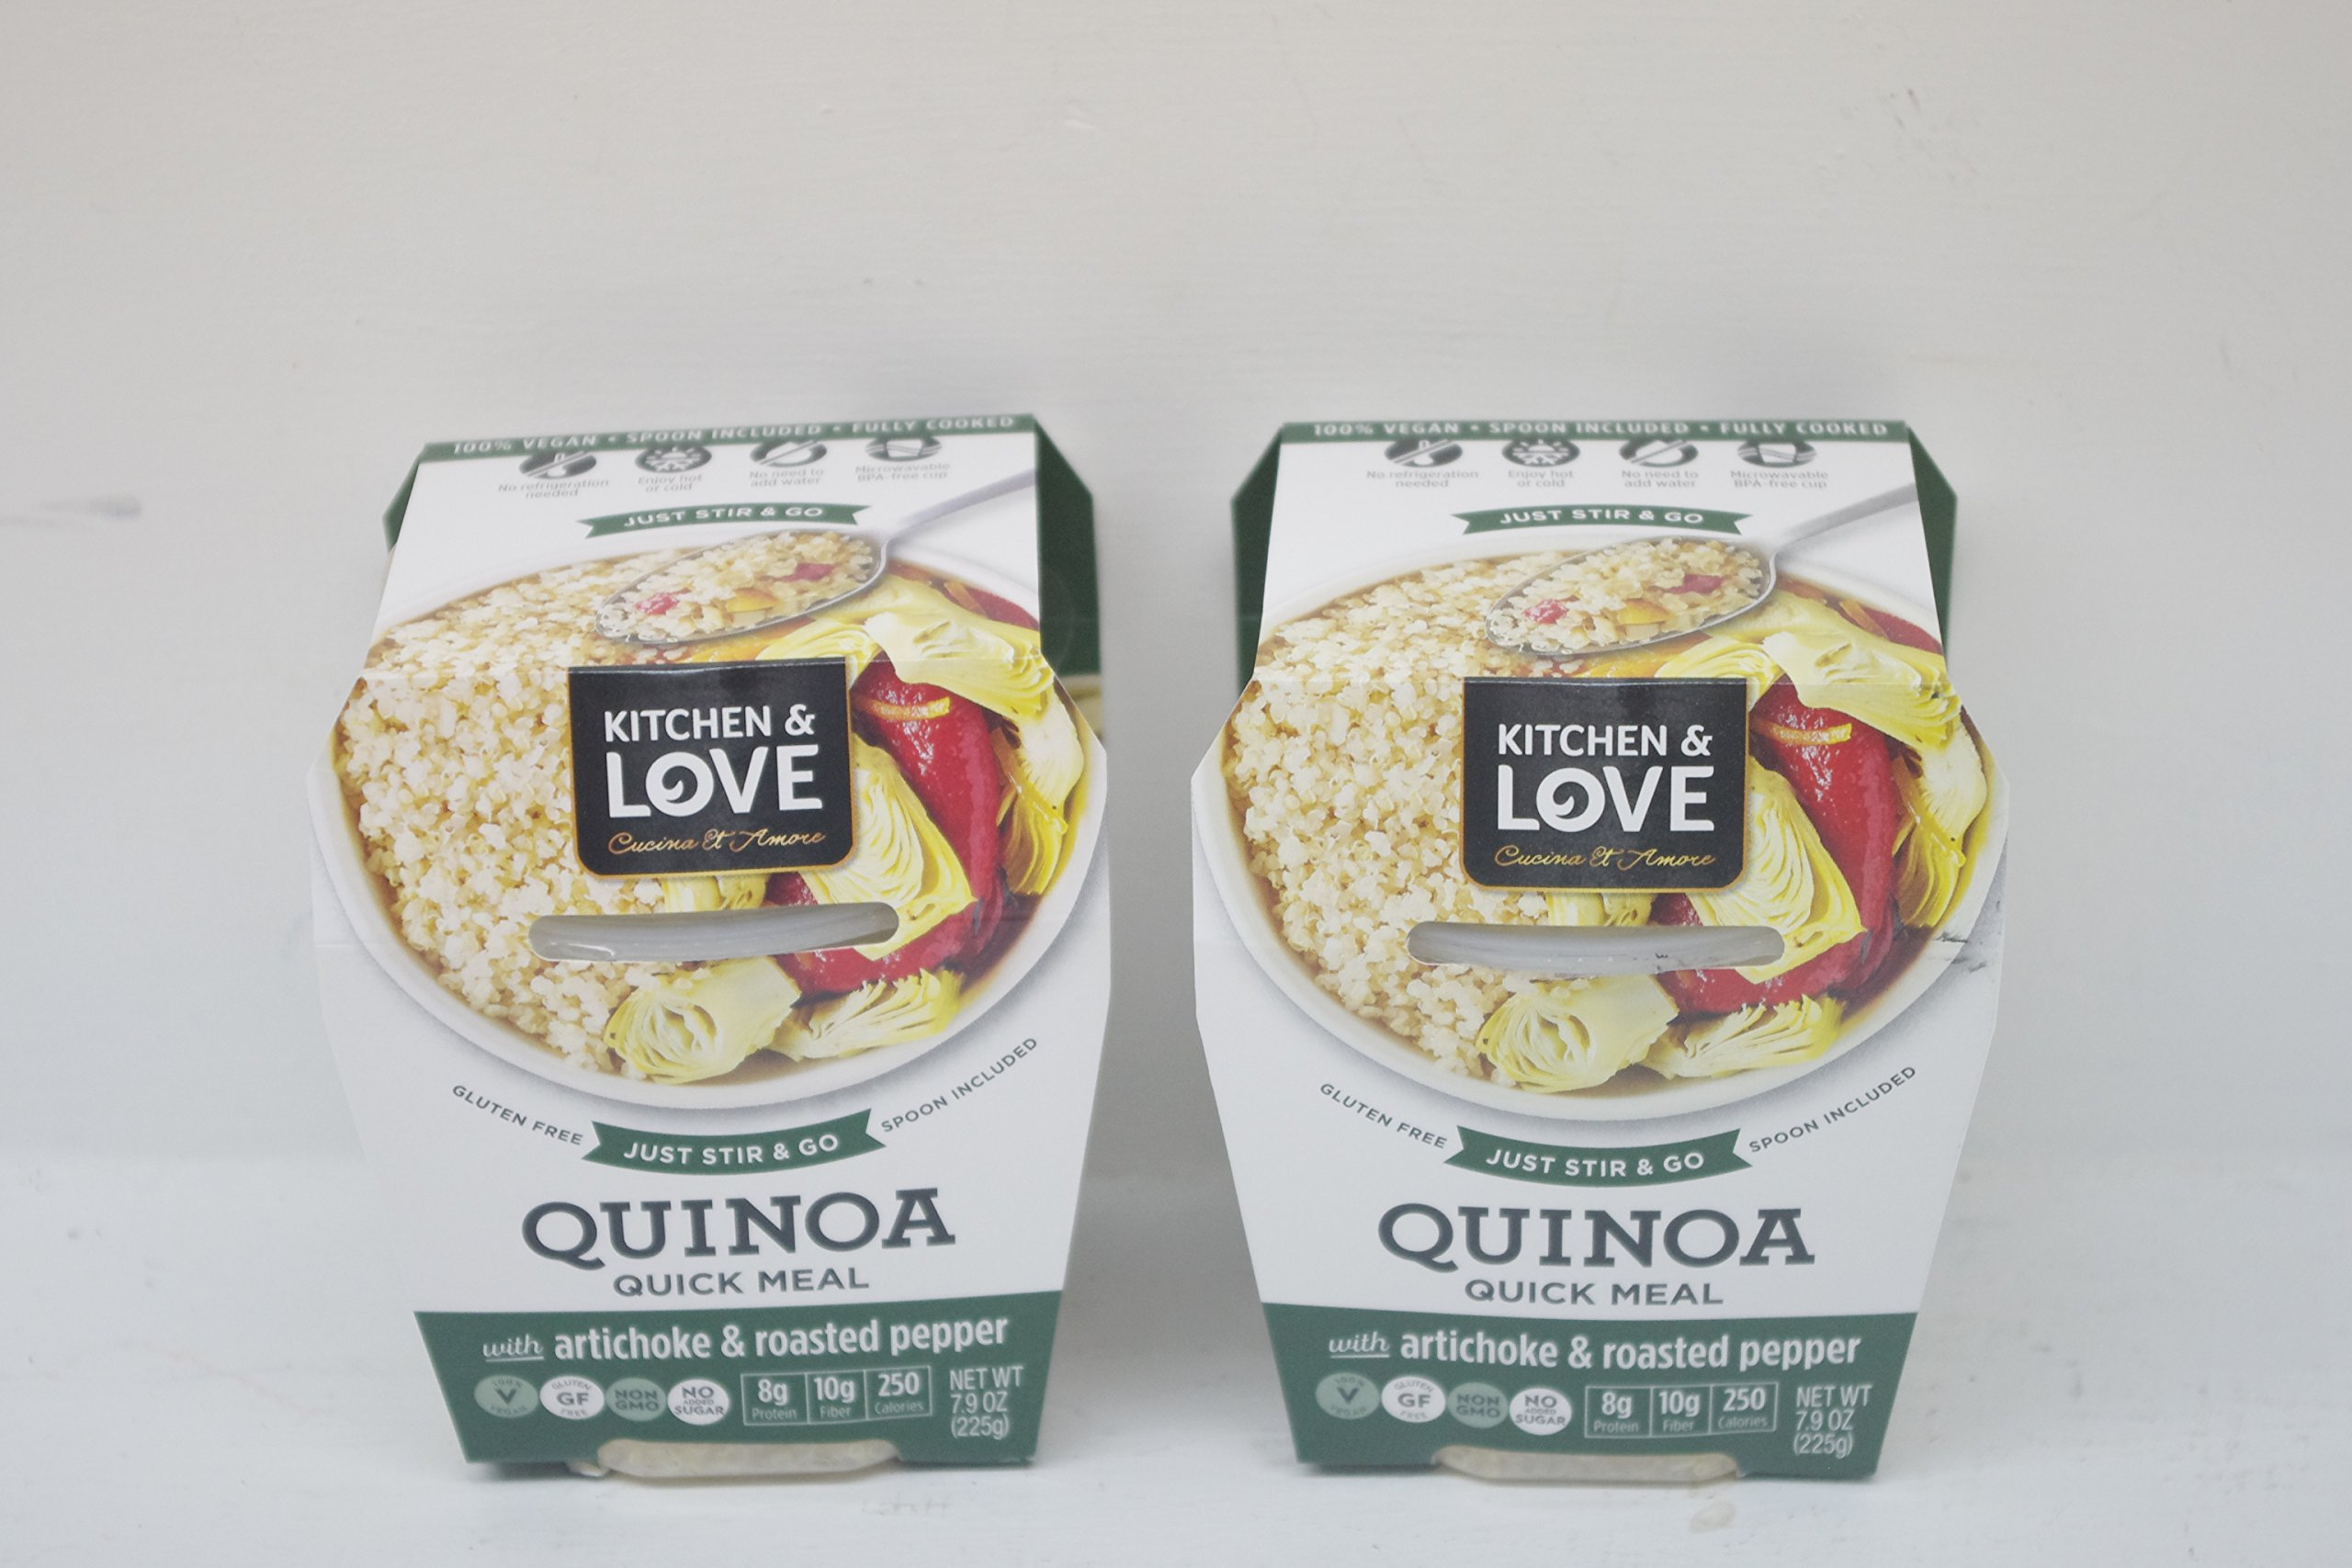 Healthy Quinoa Meal With Artichoke & Roasted Peppers - Ready To Eat, Spoon Included - 2 (7.9 Oz.) Units by Cucina & Armore Inc.